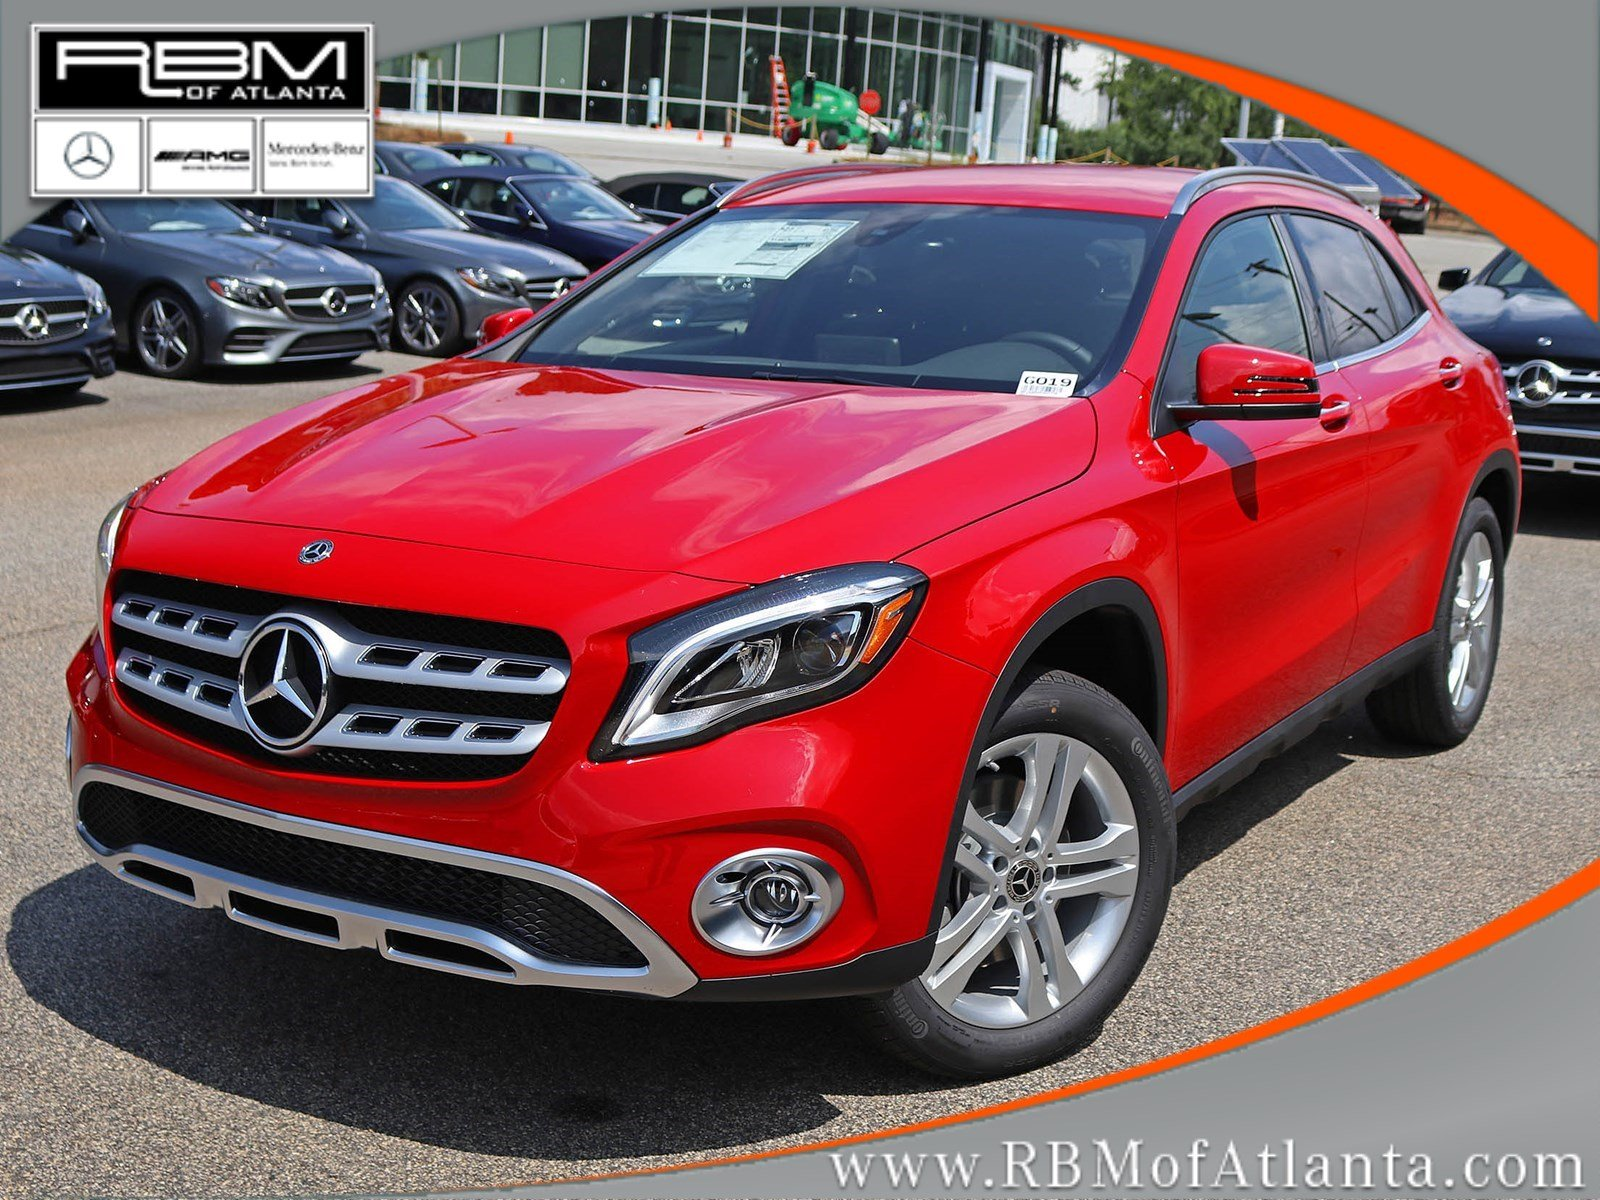 mercedes benz 2019 cla 250 New 2019 Mercedes Benz GLA GLA 250 Sport Utility in Atlanta #G019  mercedes benz 2019 cla 250